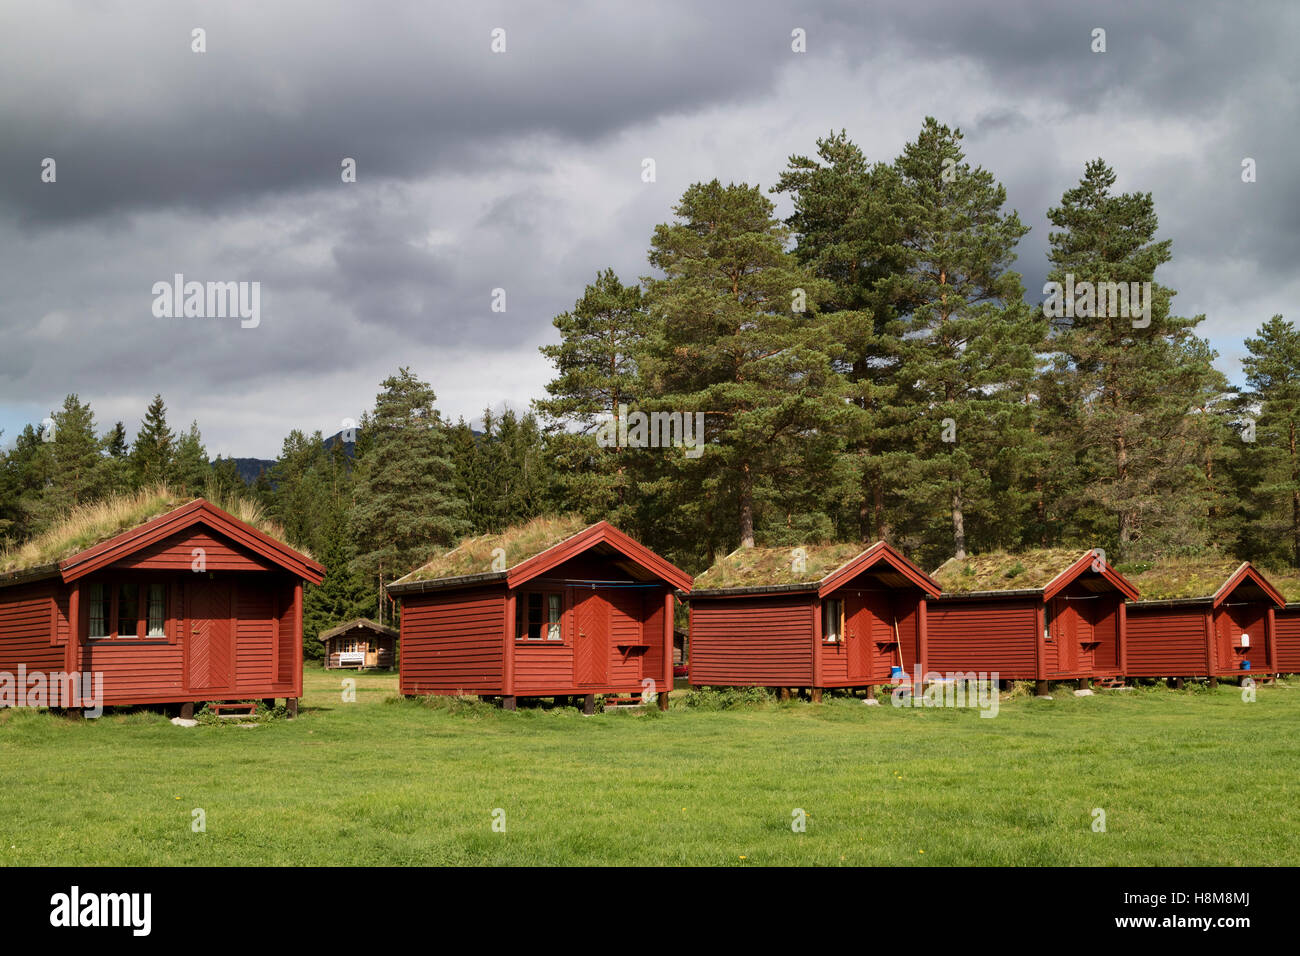 Row Of Cabins For Rent In The Valley Of Valle With An